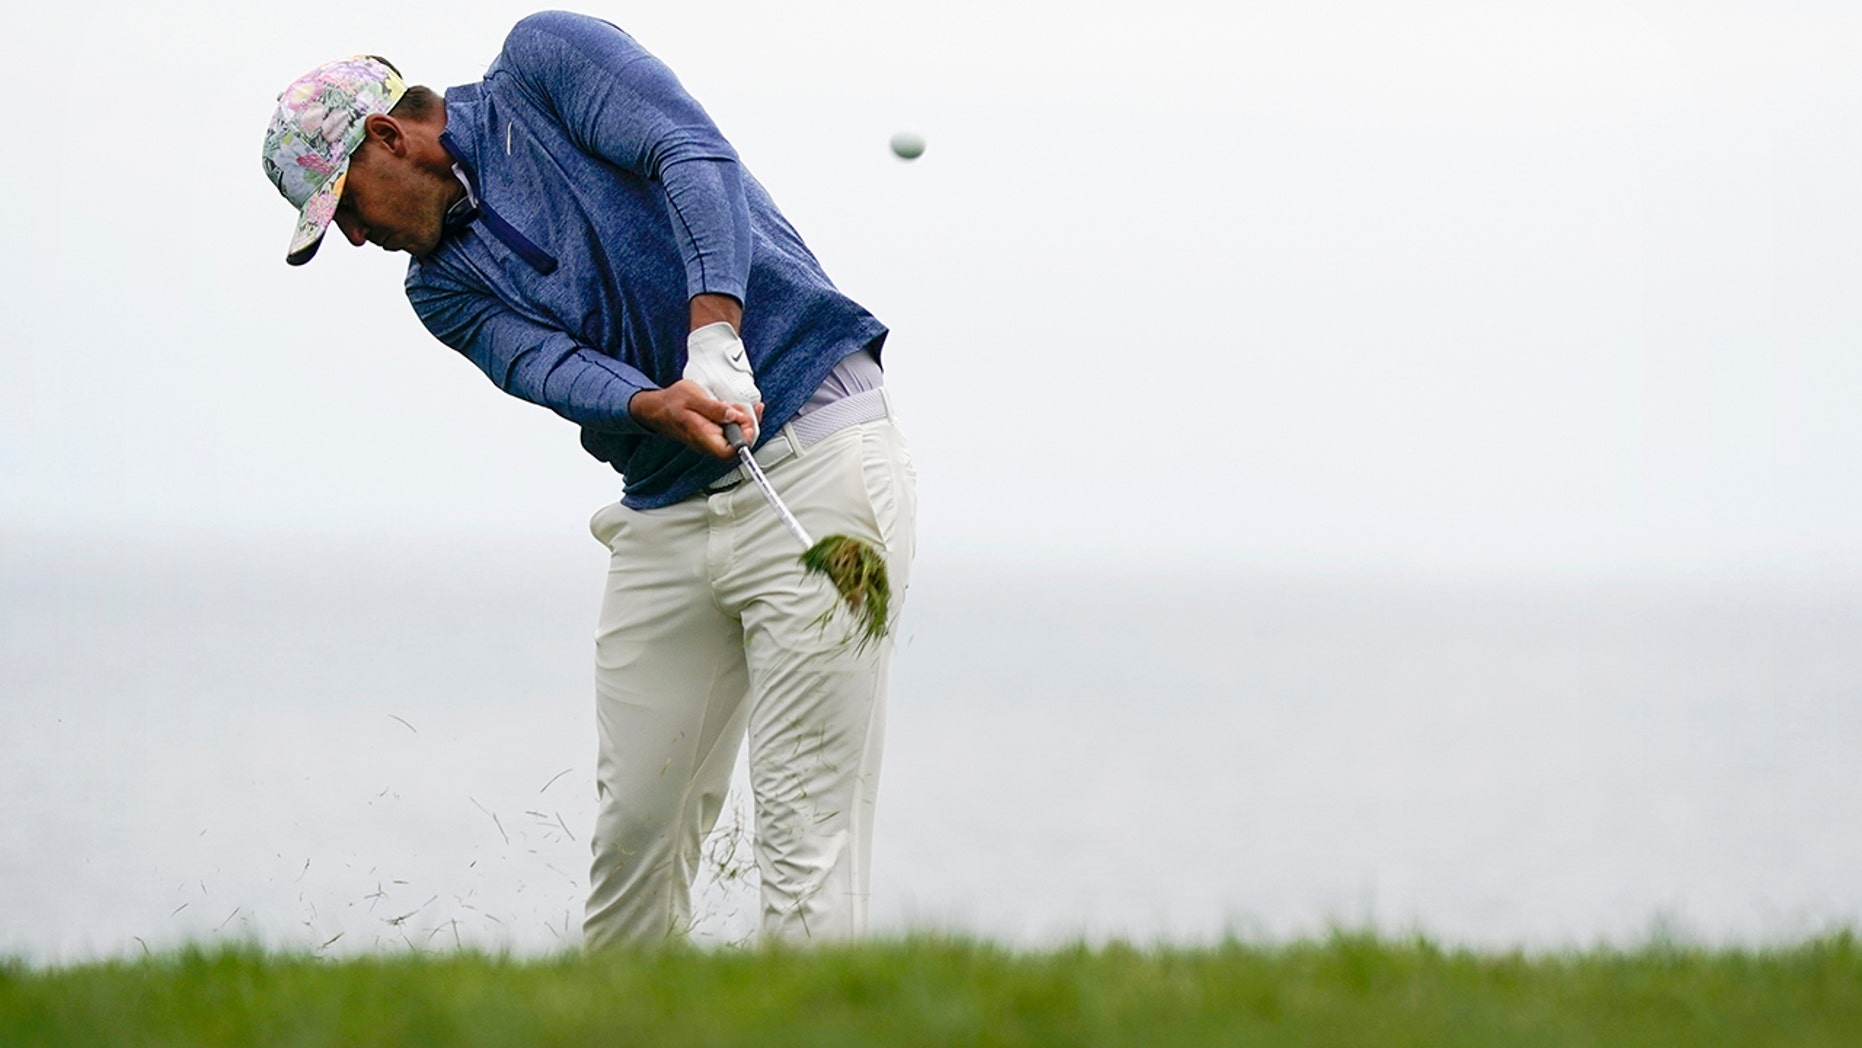 Brooks Koepka hits from the rough on the 11th hole during the first round of the U.S. Open Championship golf tournament Thursday, June 13, 2019, in Pebble Beach, Calif. (AP Photo/David J. Phillip)